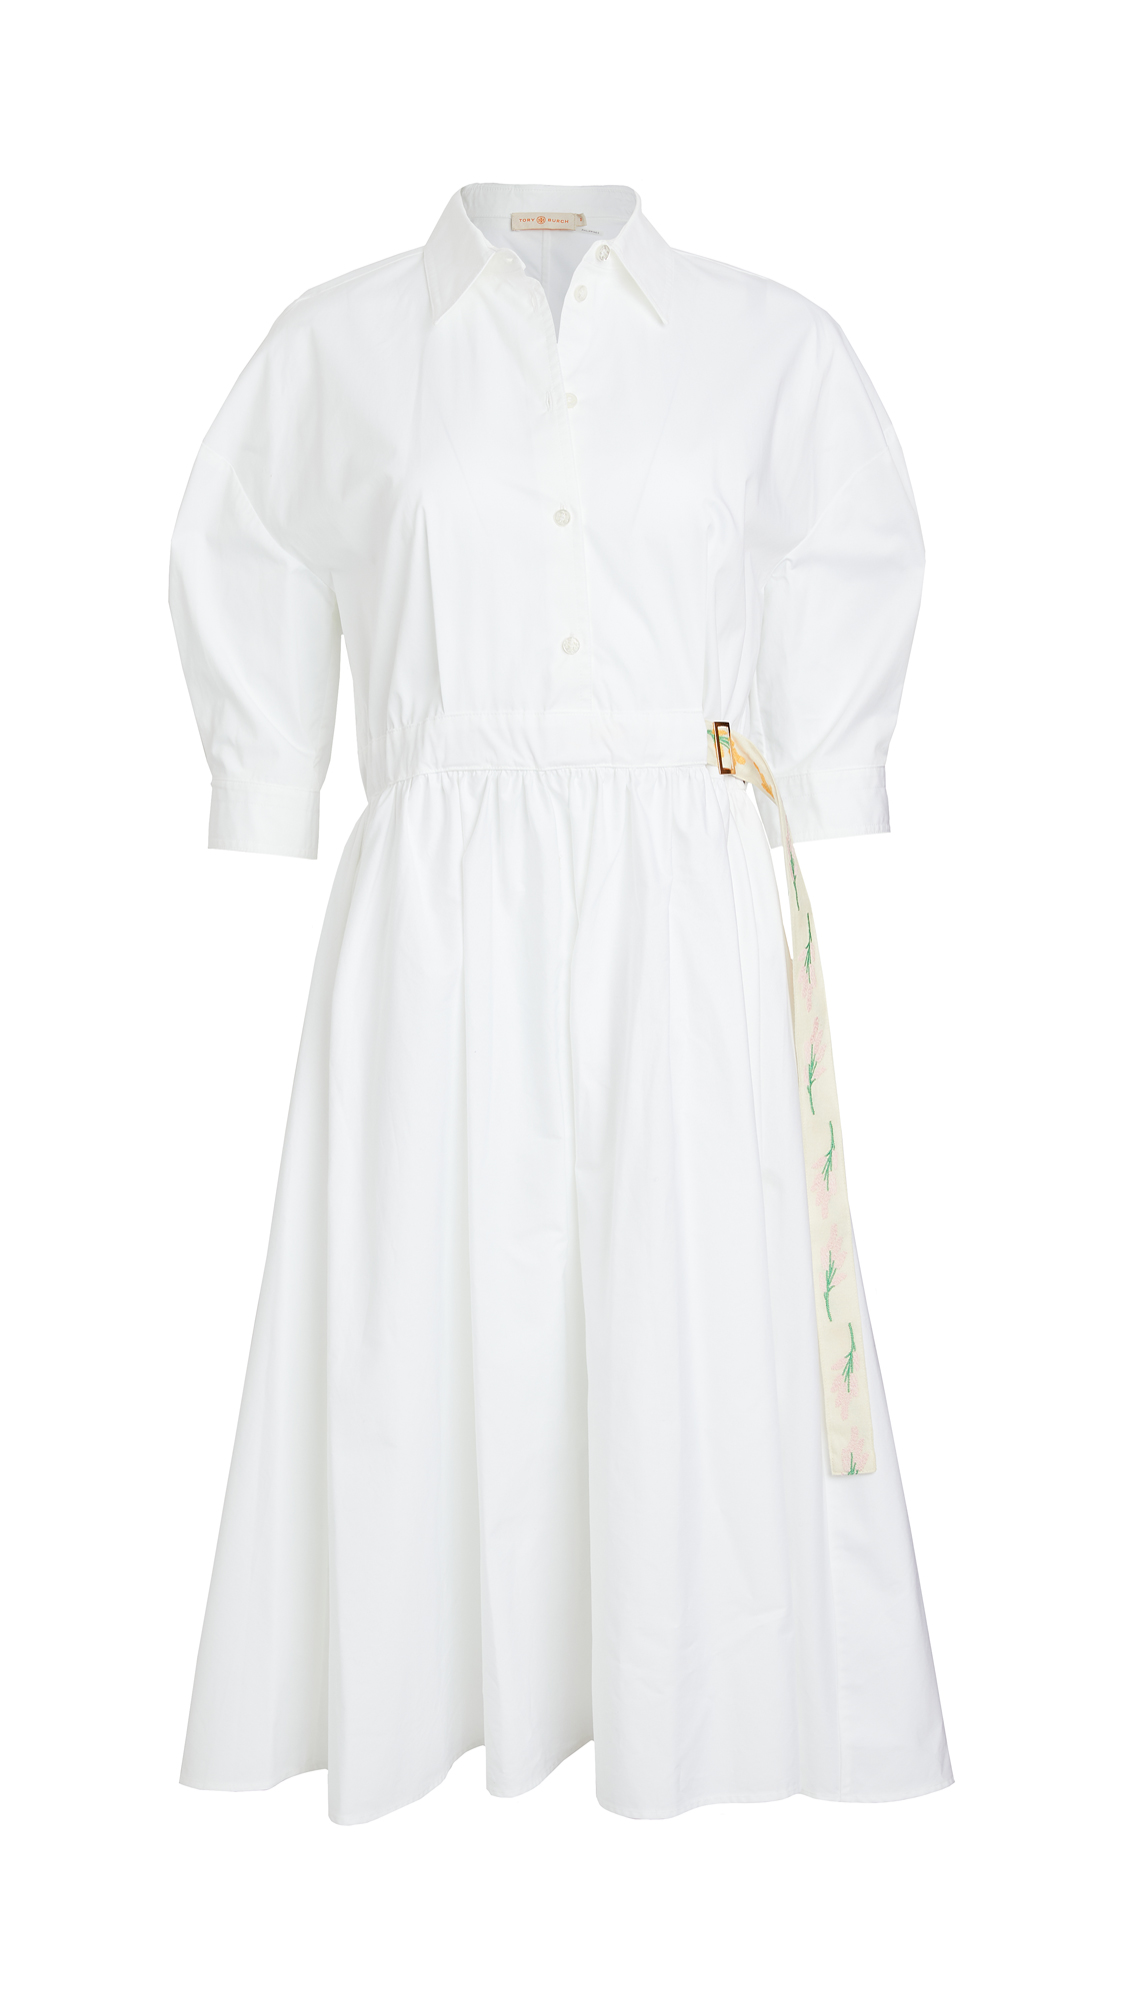 Tory Burch Poplin Shirtdress